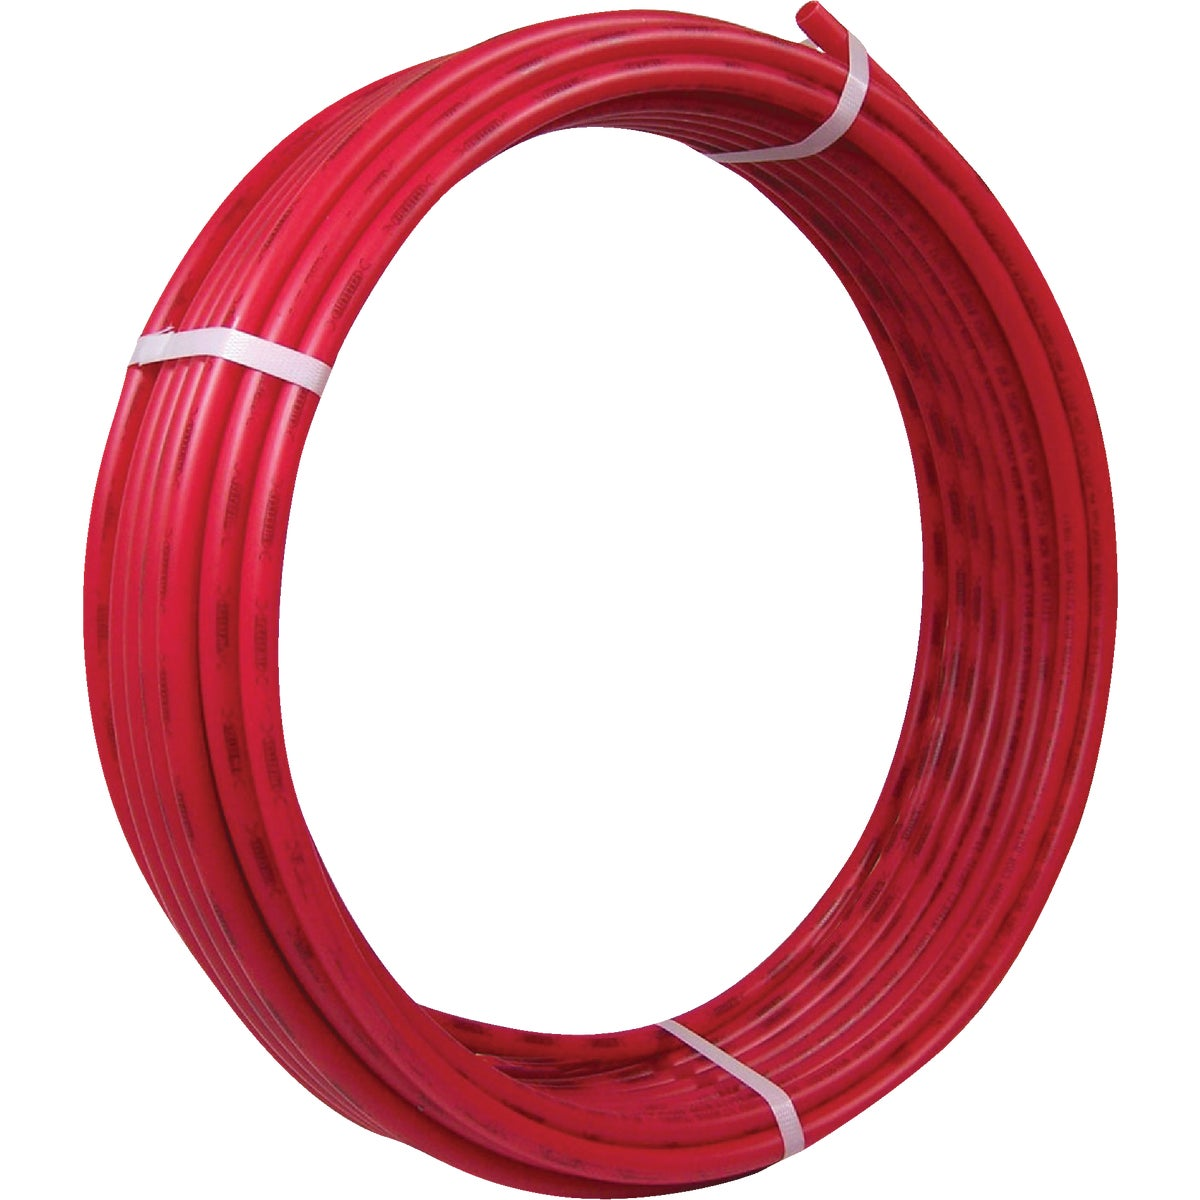 "1/2""X300' RED PEX TUBING - WPTC08-300R by Watts Regulator Co"